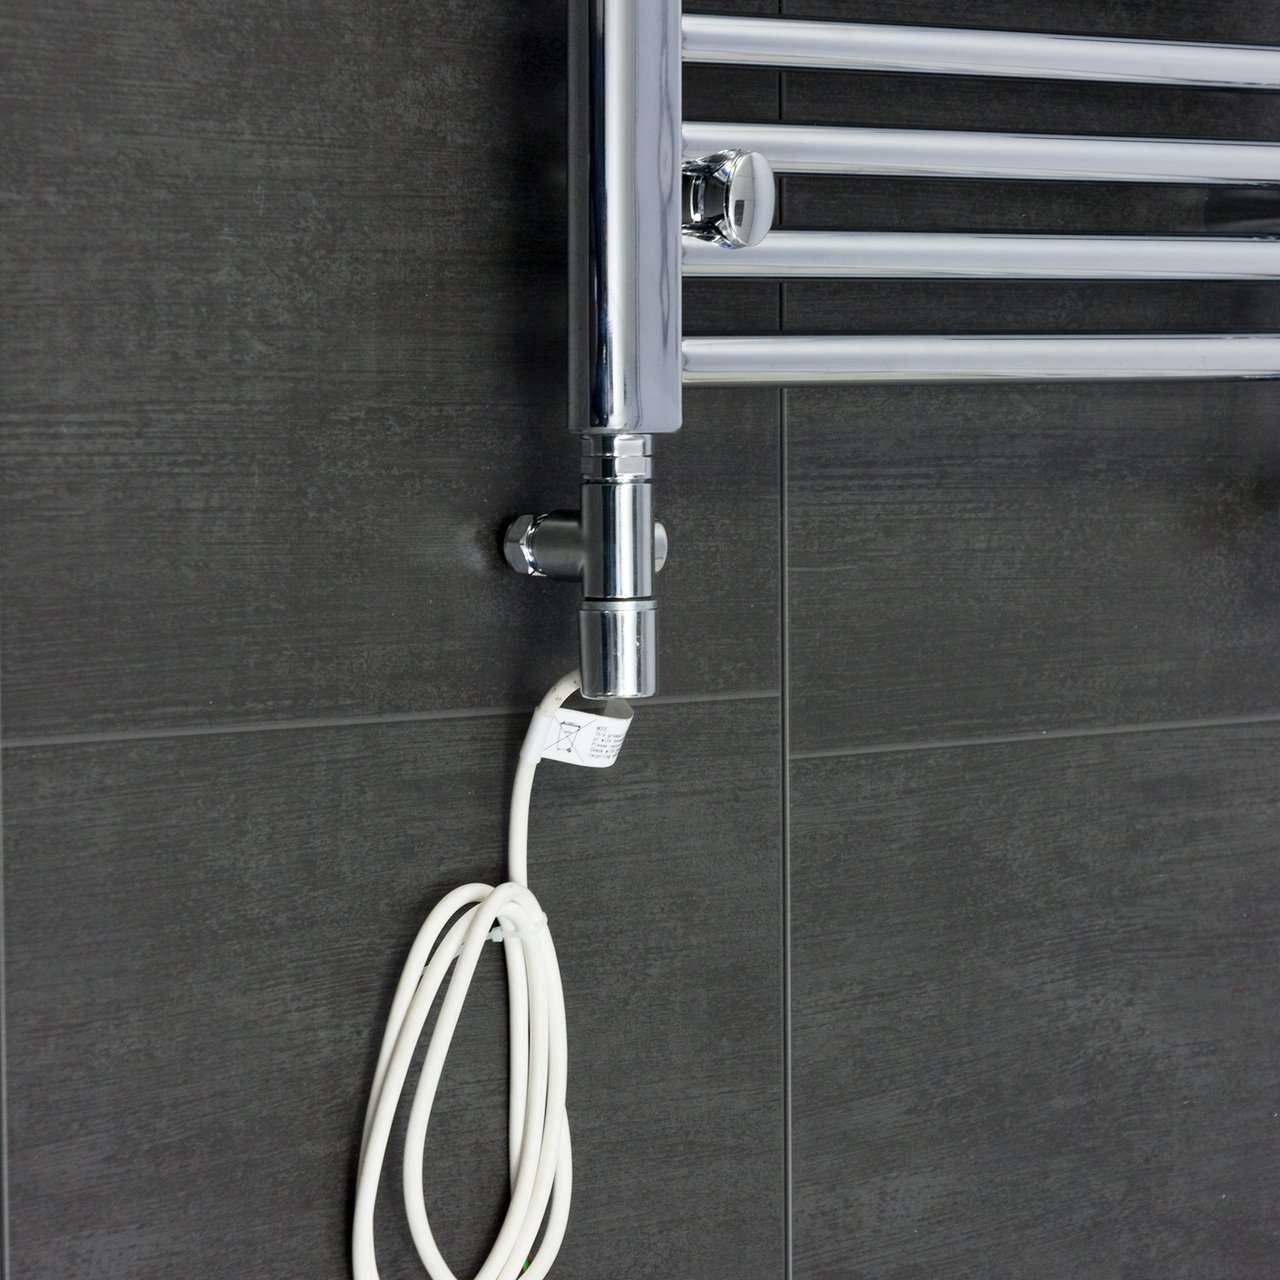 Single Heat Dual Fuel Kit with Corner Valve For Heated Towel Rail Radiator